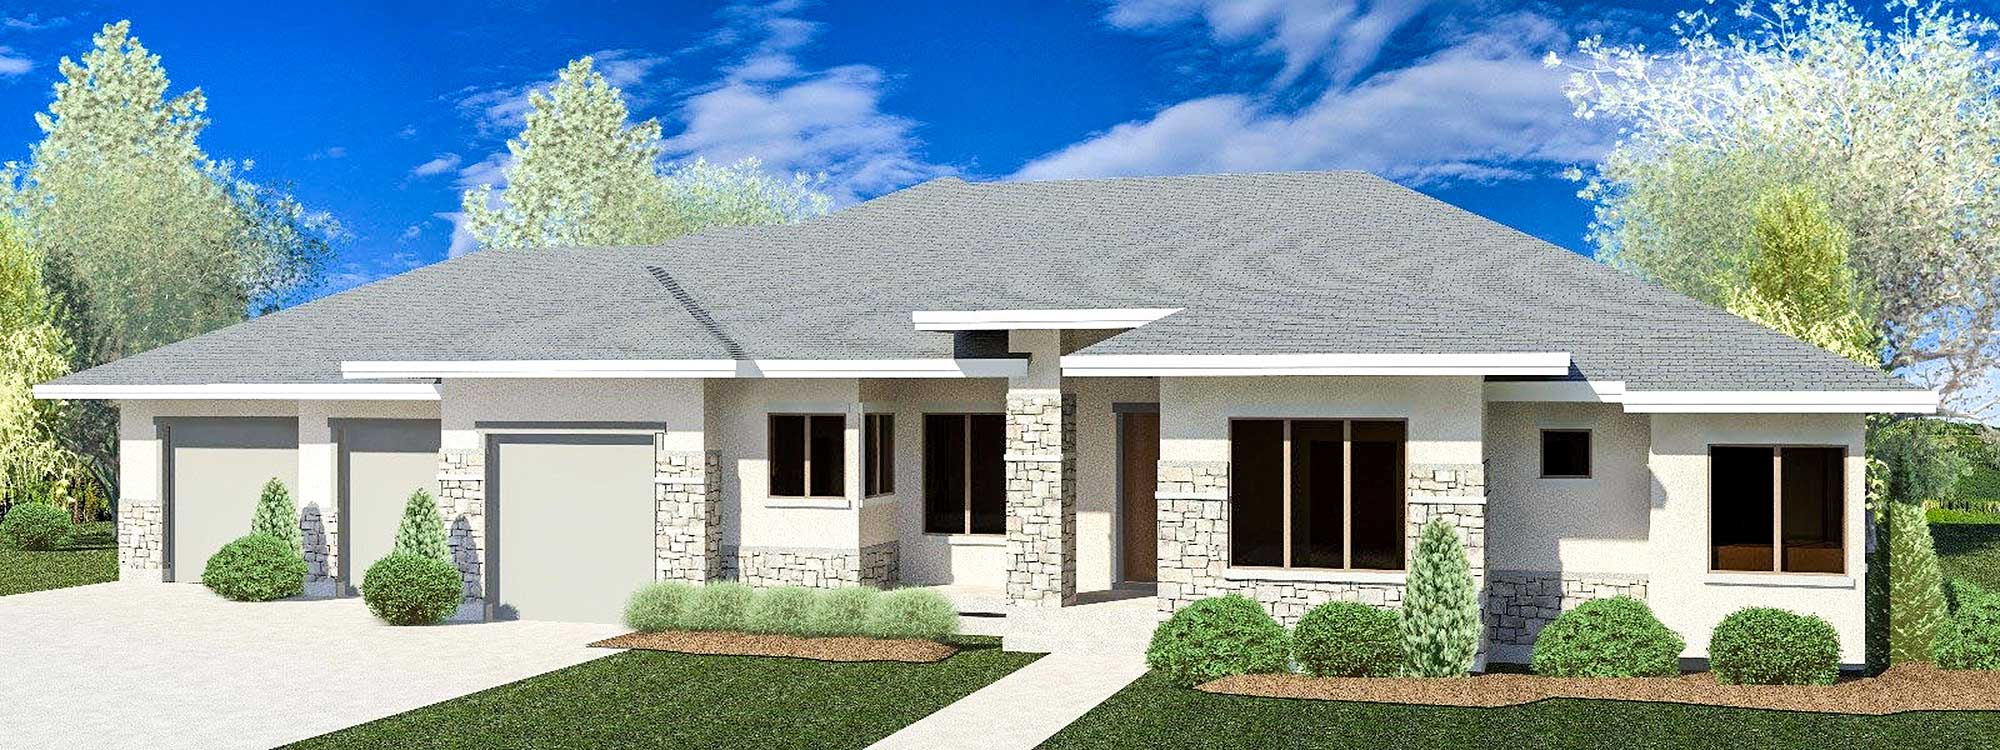 best one story house plans one story prairie style house plan 290067iy architectural designs house plans 4706